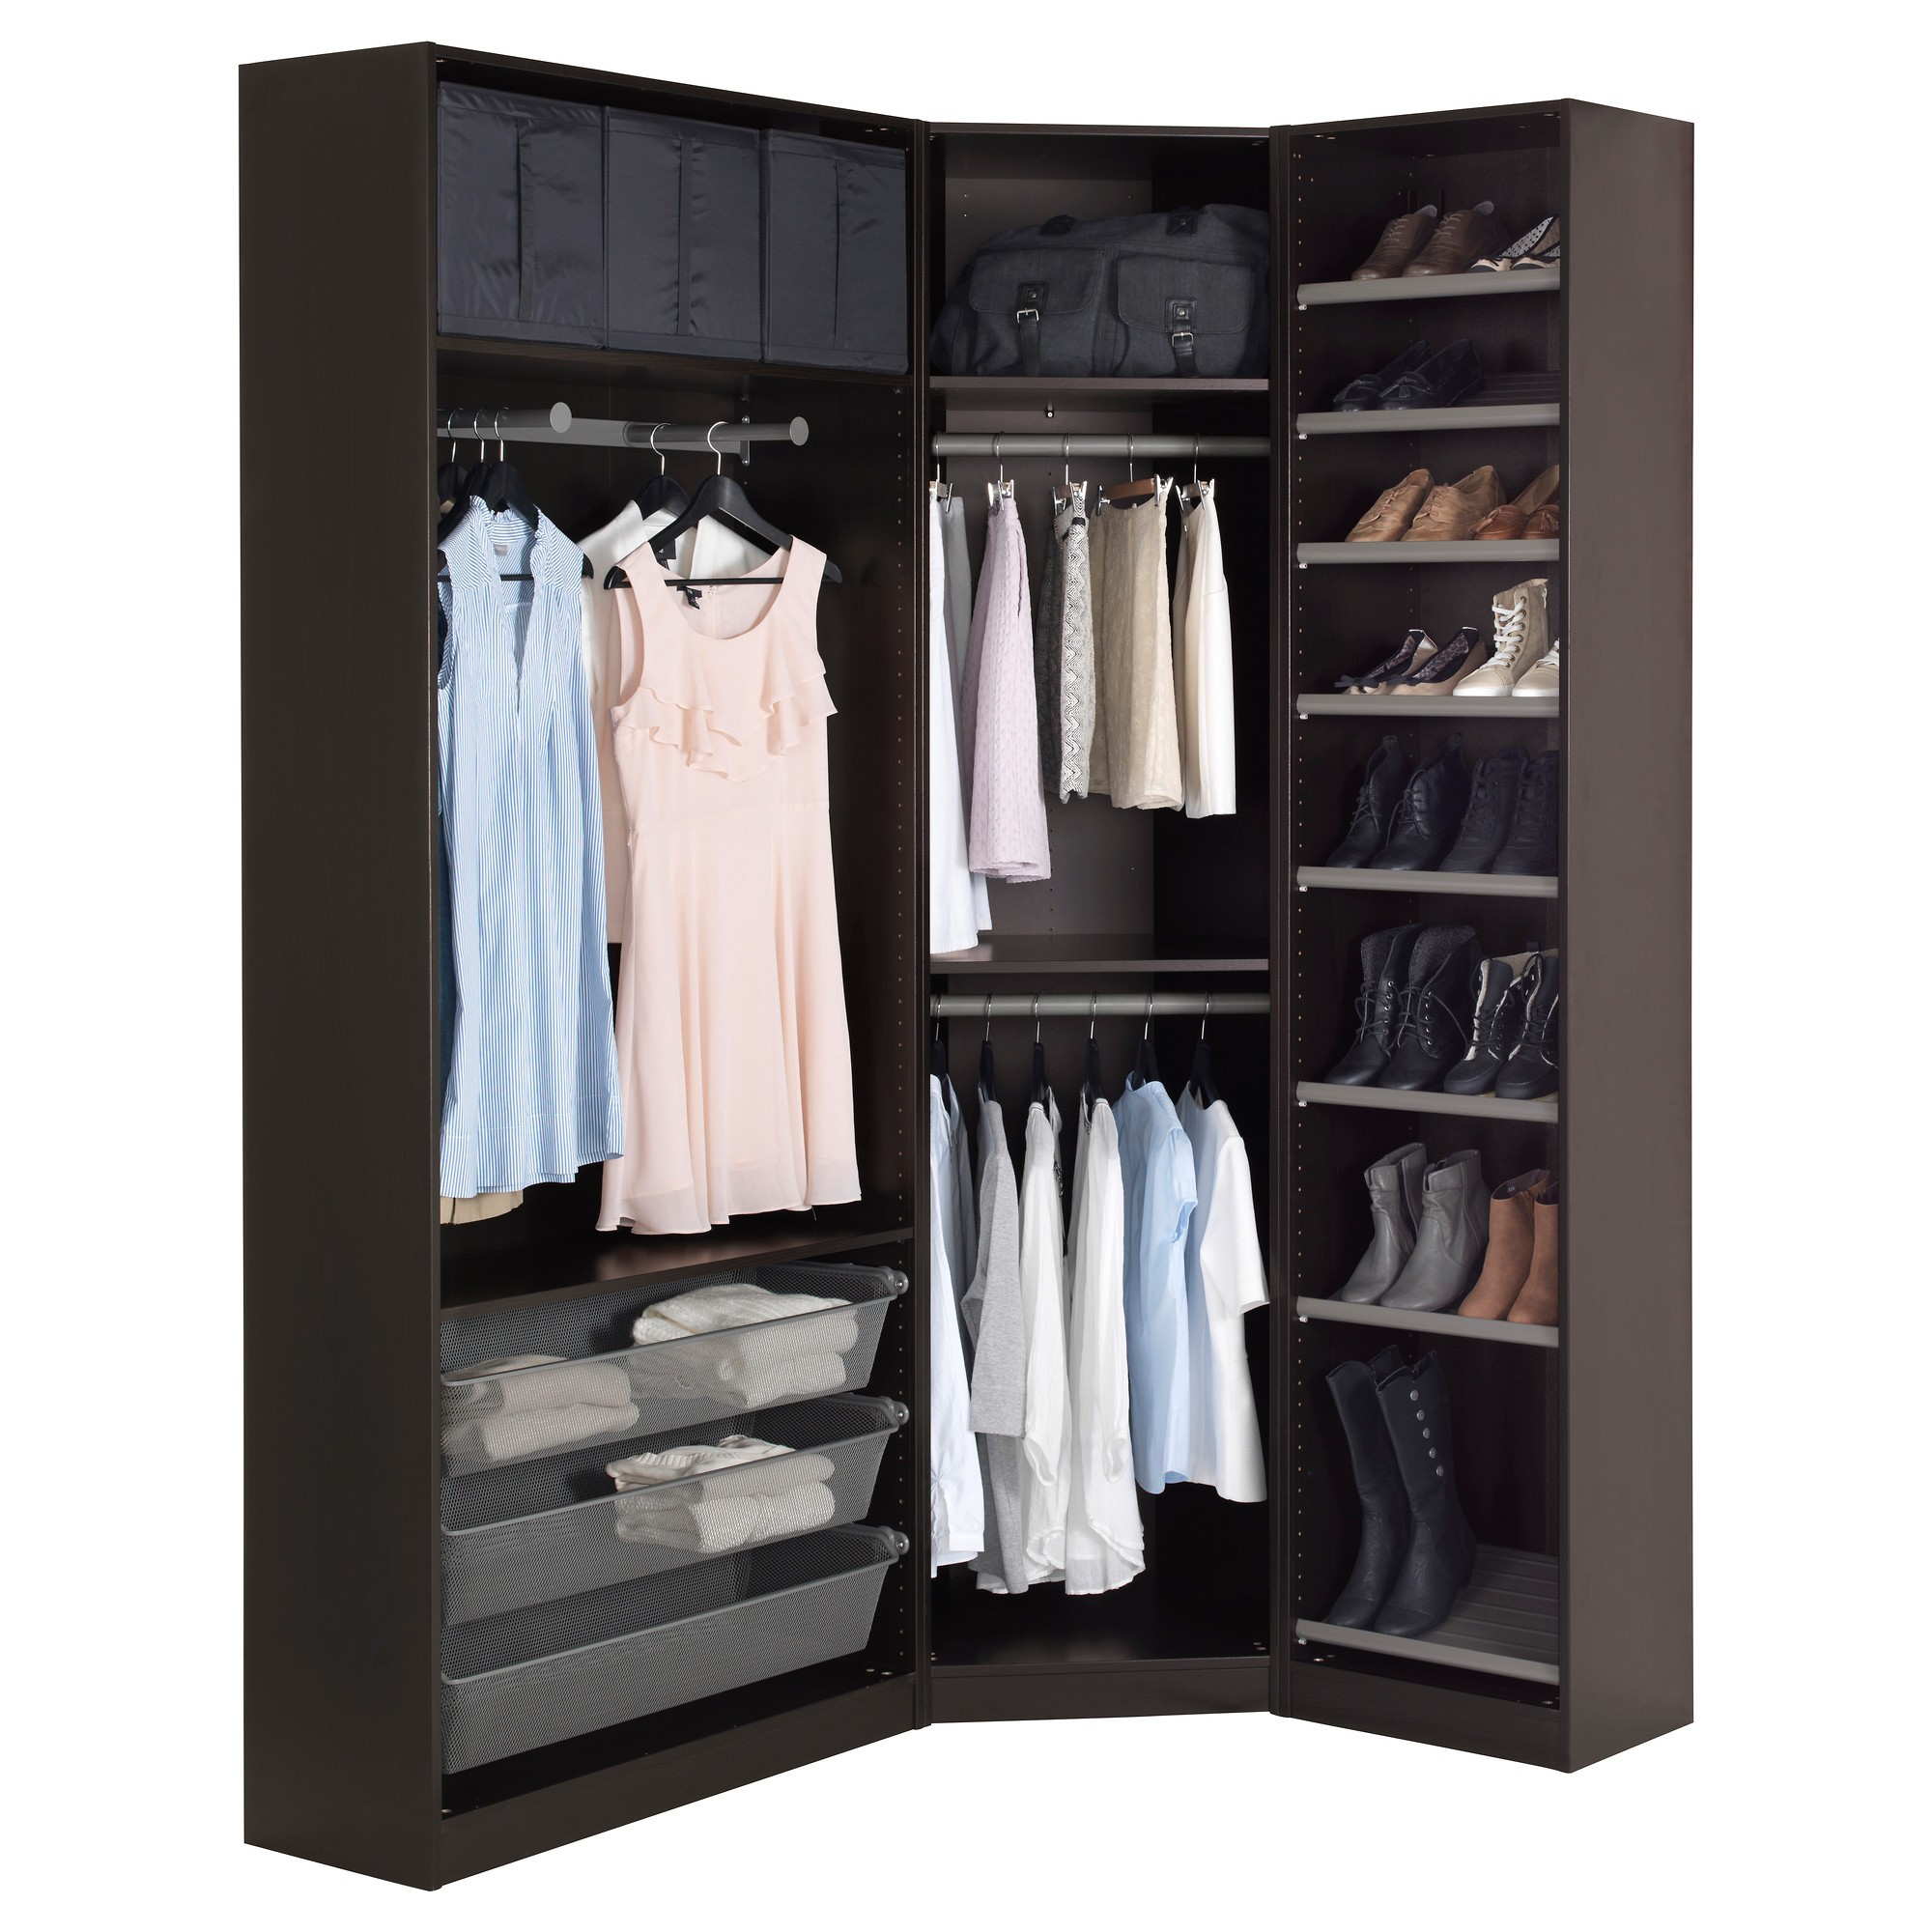 dressing d angle ikea great akurum armoire inf blanc. Black Bedroom Furniture Sets. Home Design Ideas